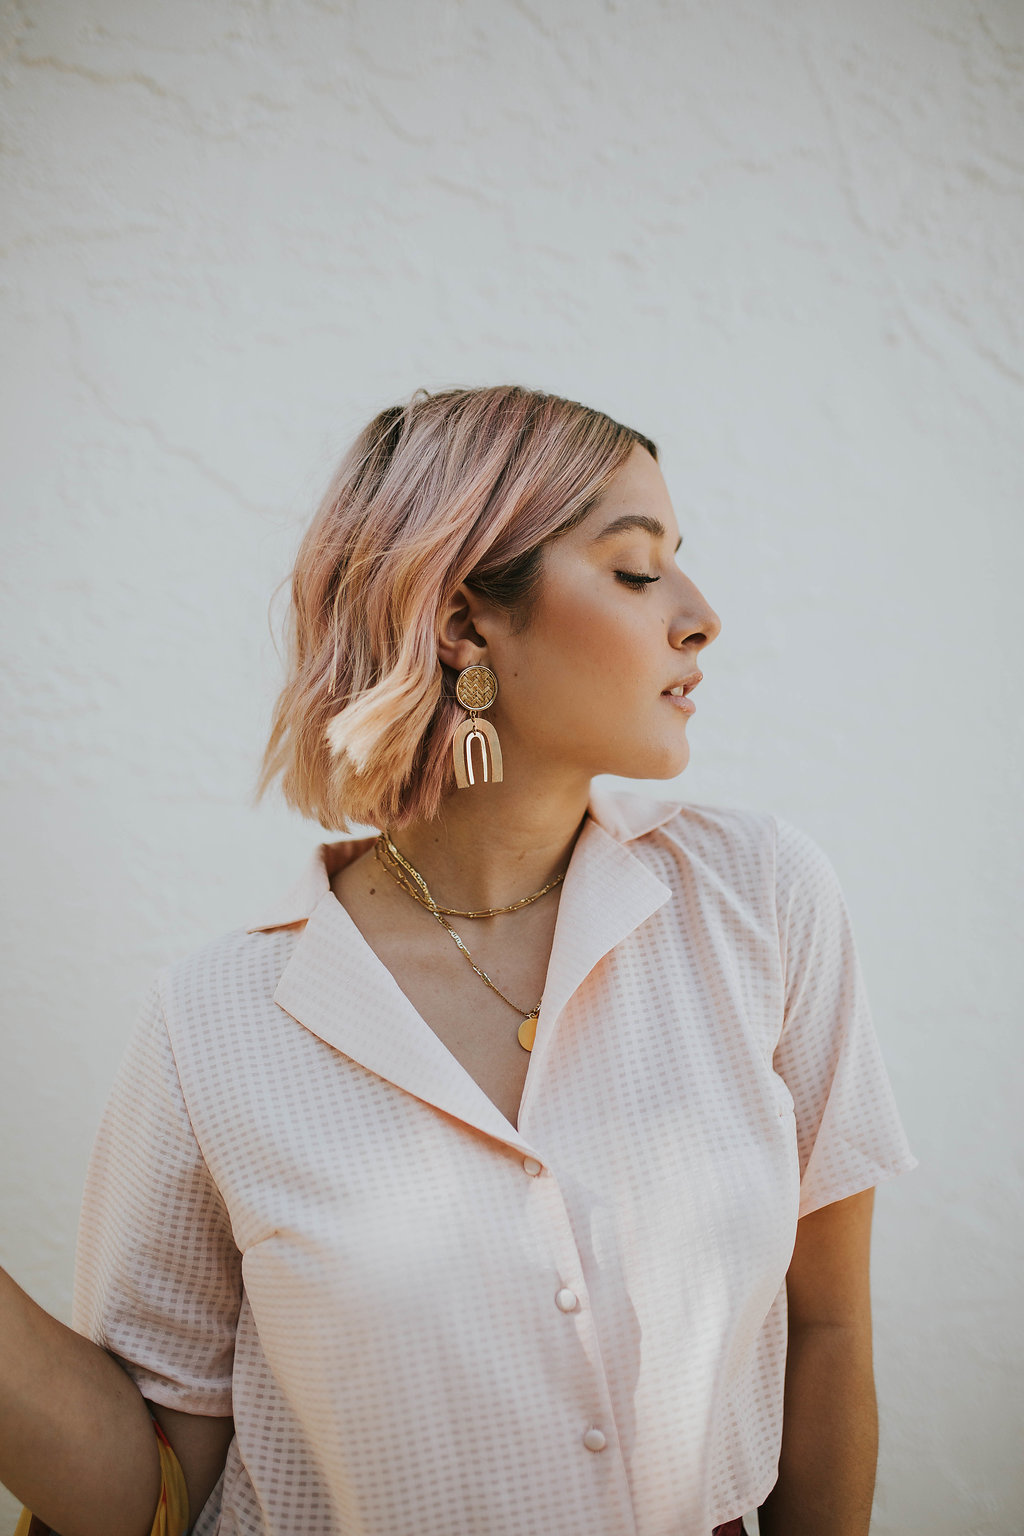 Earrings:  The Style Union  | Layered Spheres Choker:  Mejuri  | Virgin Mary Gold Necklace was a gift from my grandma, made in Italy.